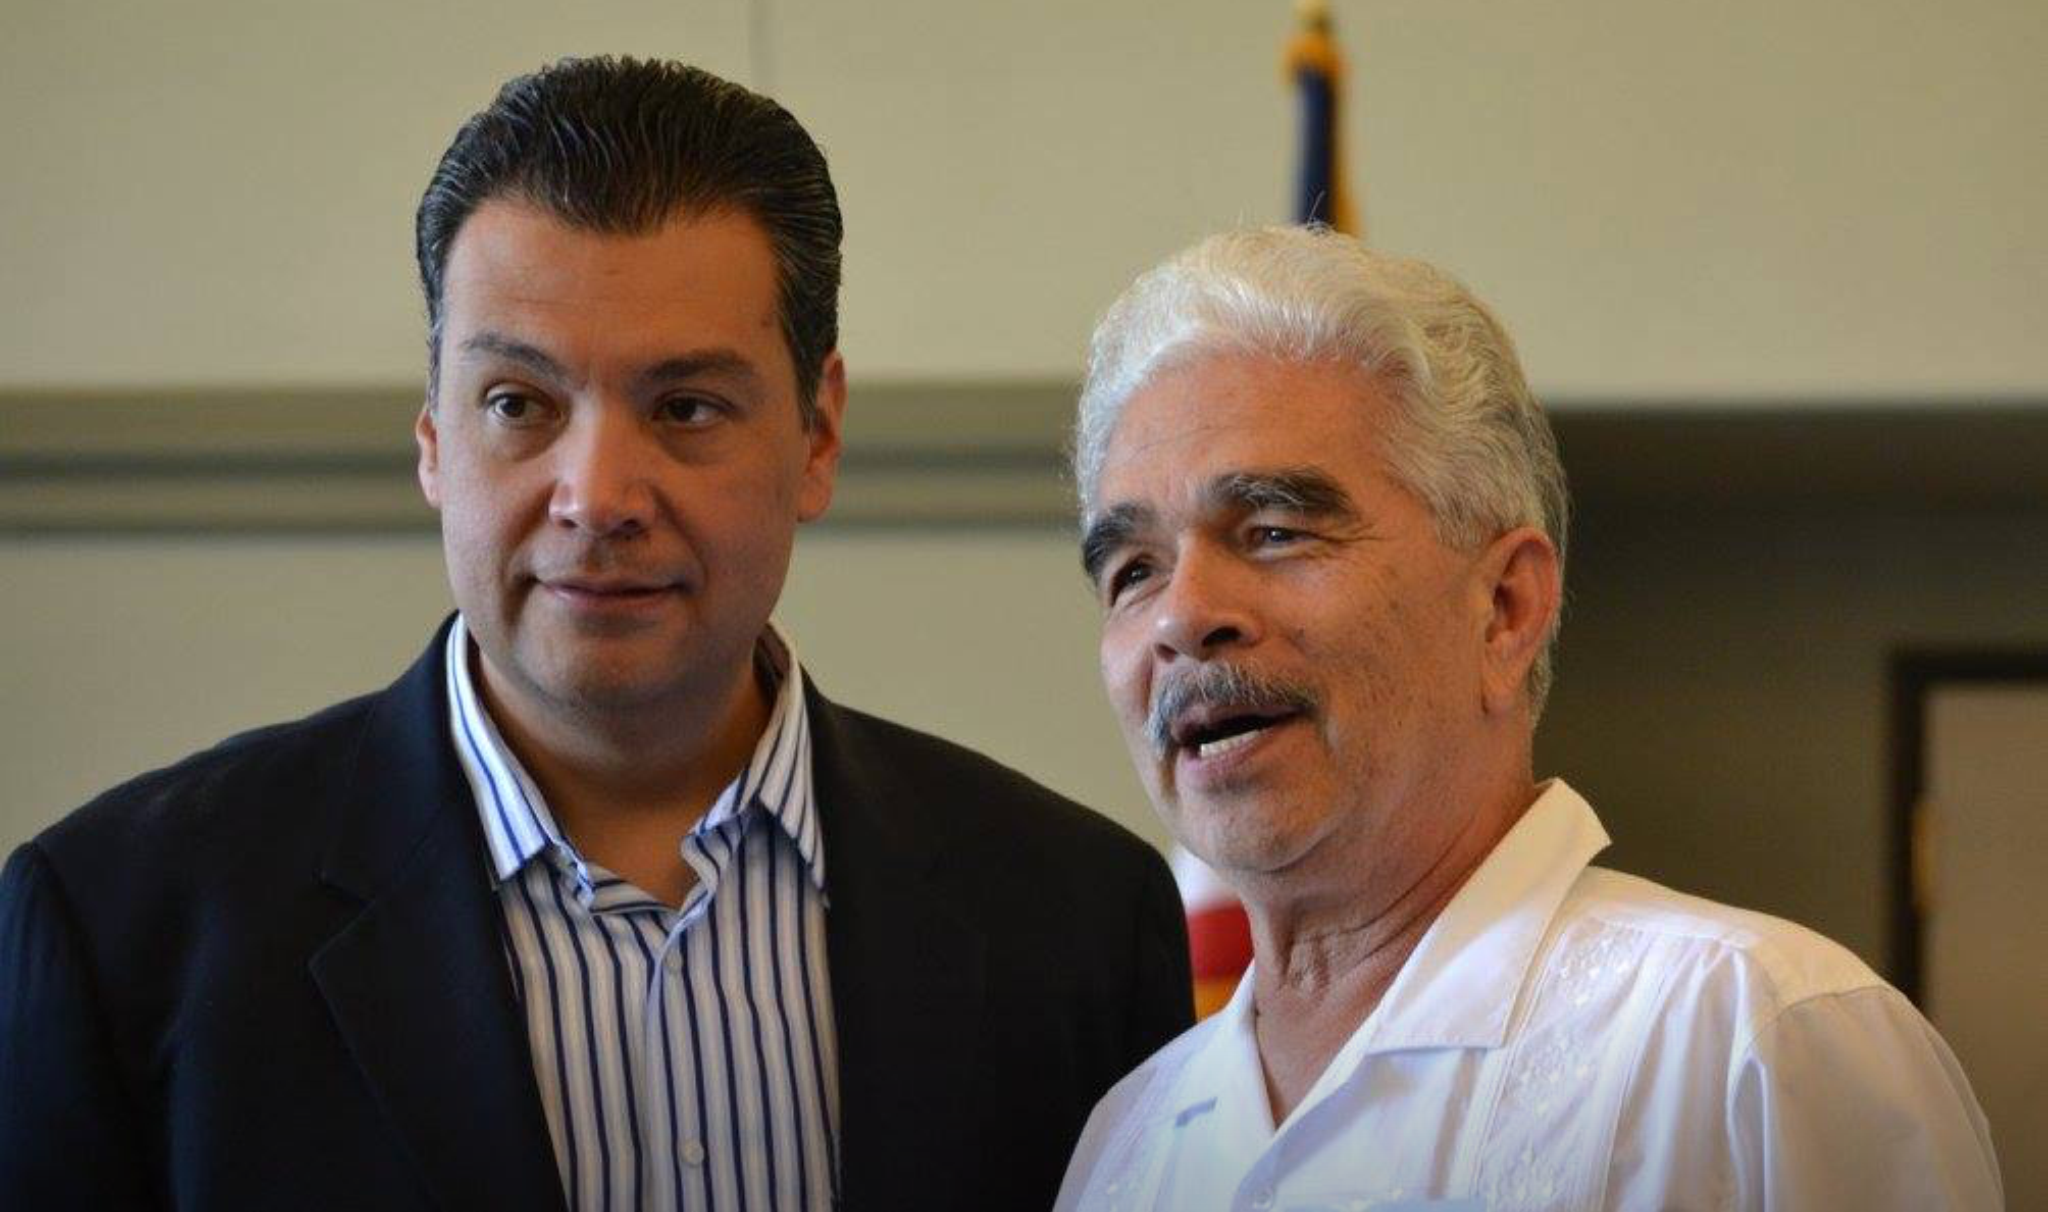 Sacramento - Pictured are David and Alex Padilla, California Secretary of State